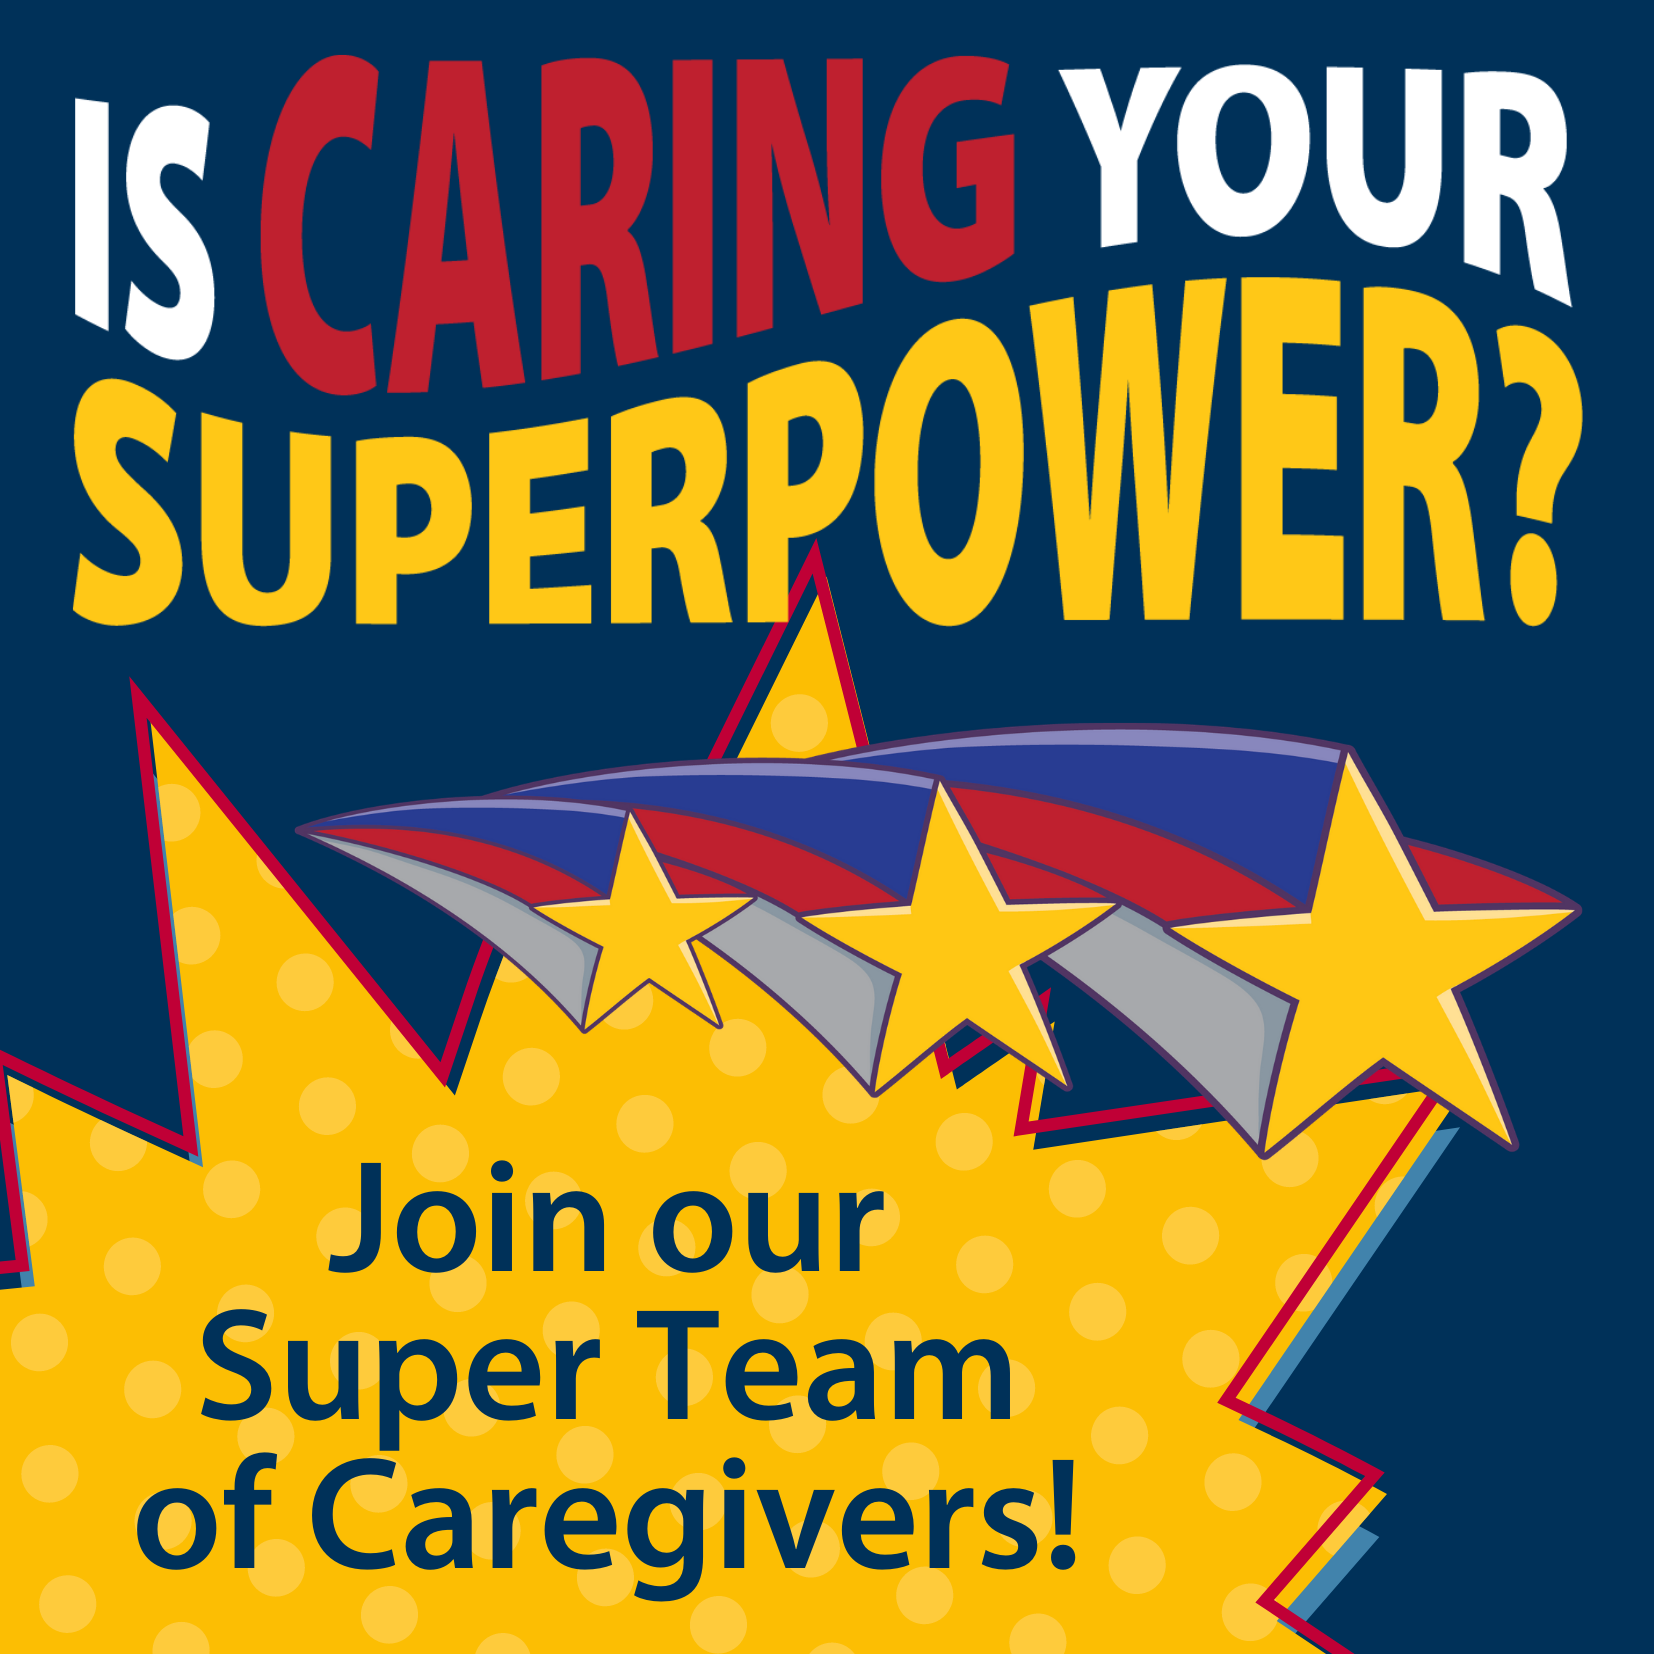 Is Caring Your SuperPower